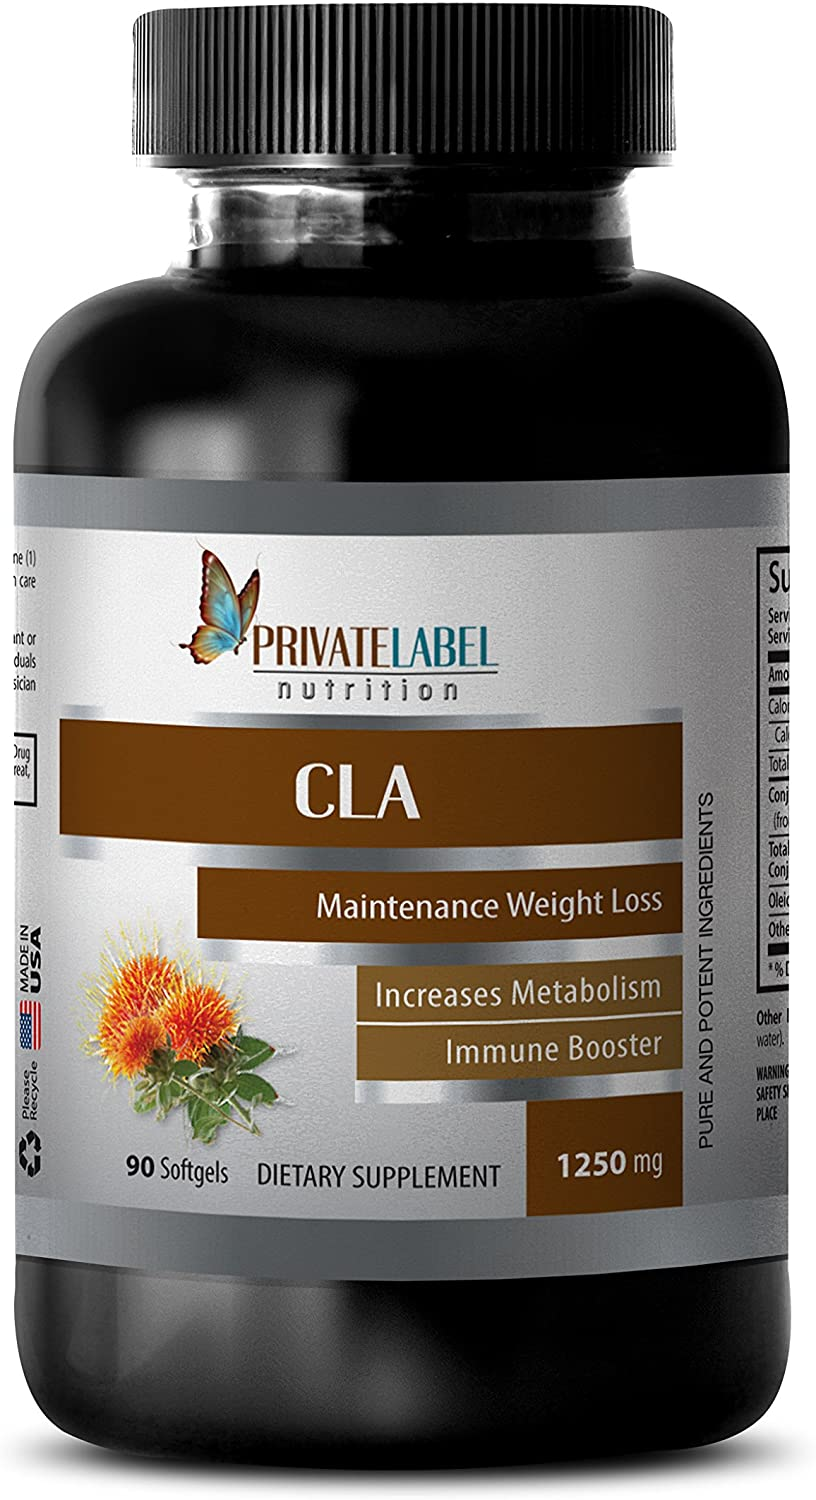 Weight Loss Products - CLA 1250MG - Safflower Oil - cla Capsules - 1 Bottle (60 Softgels)